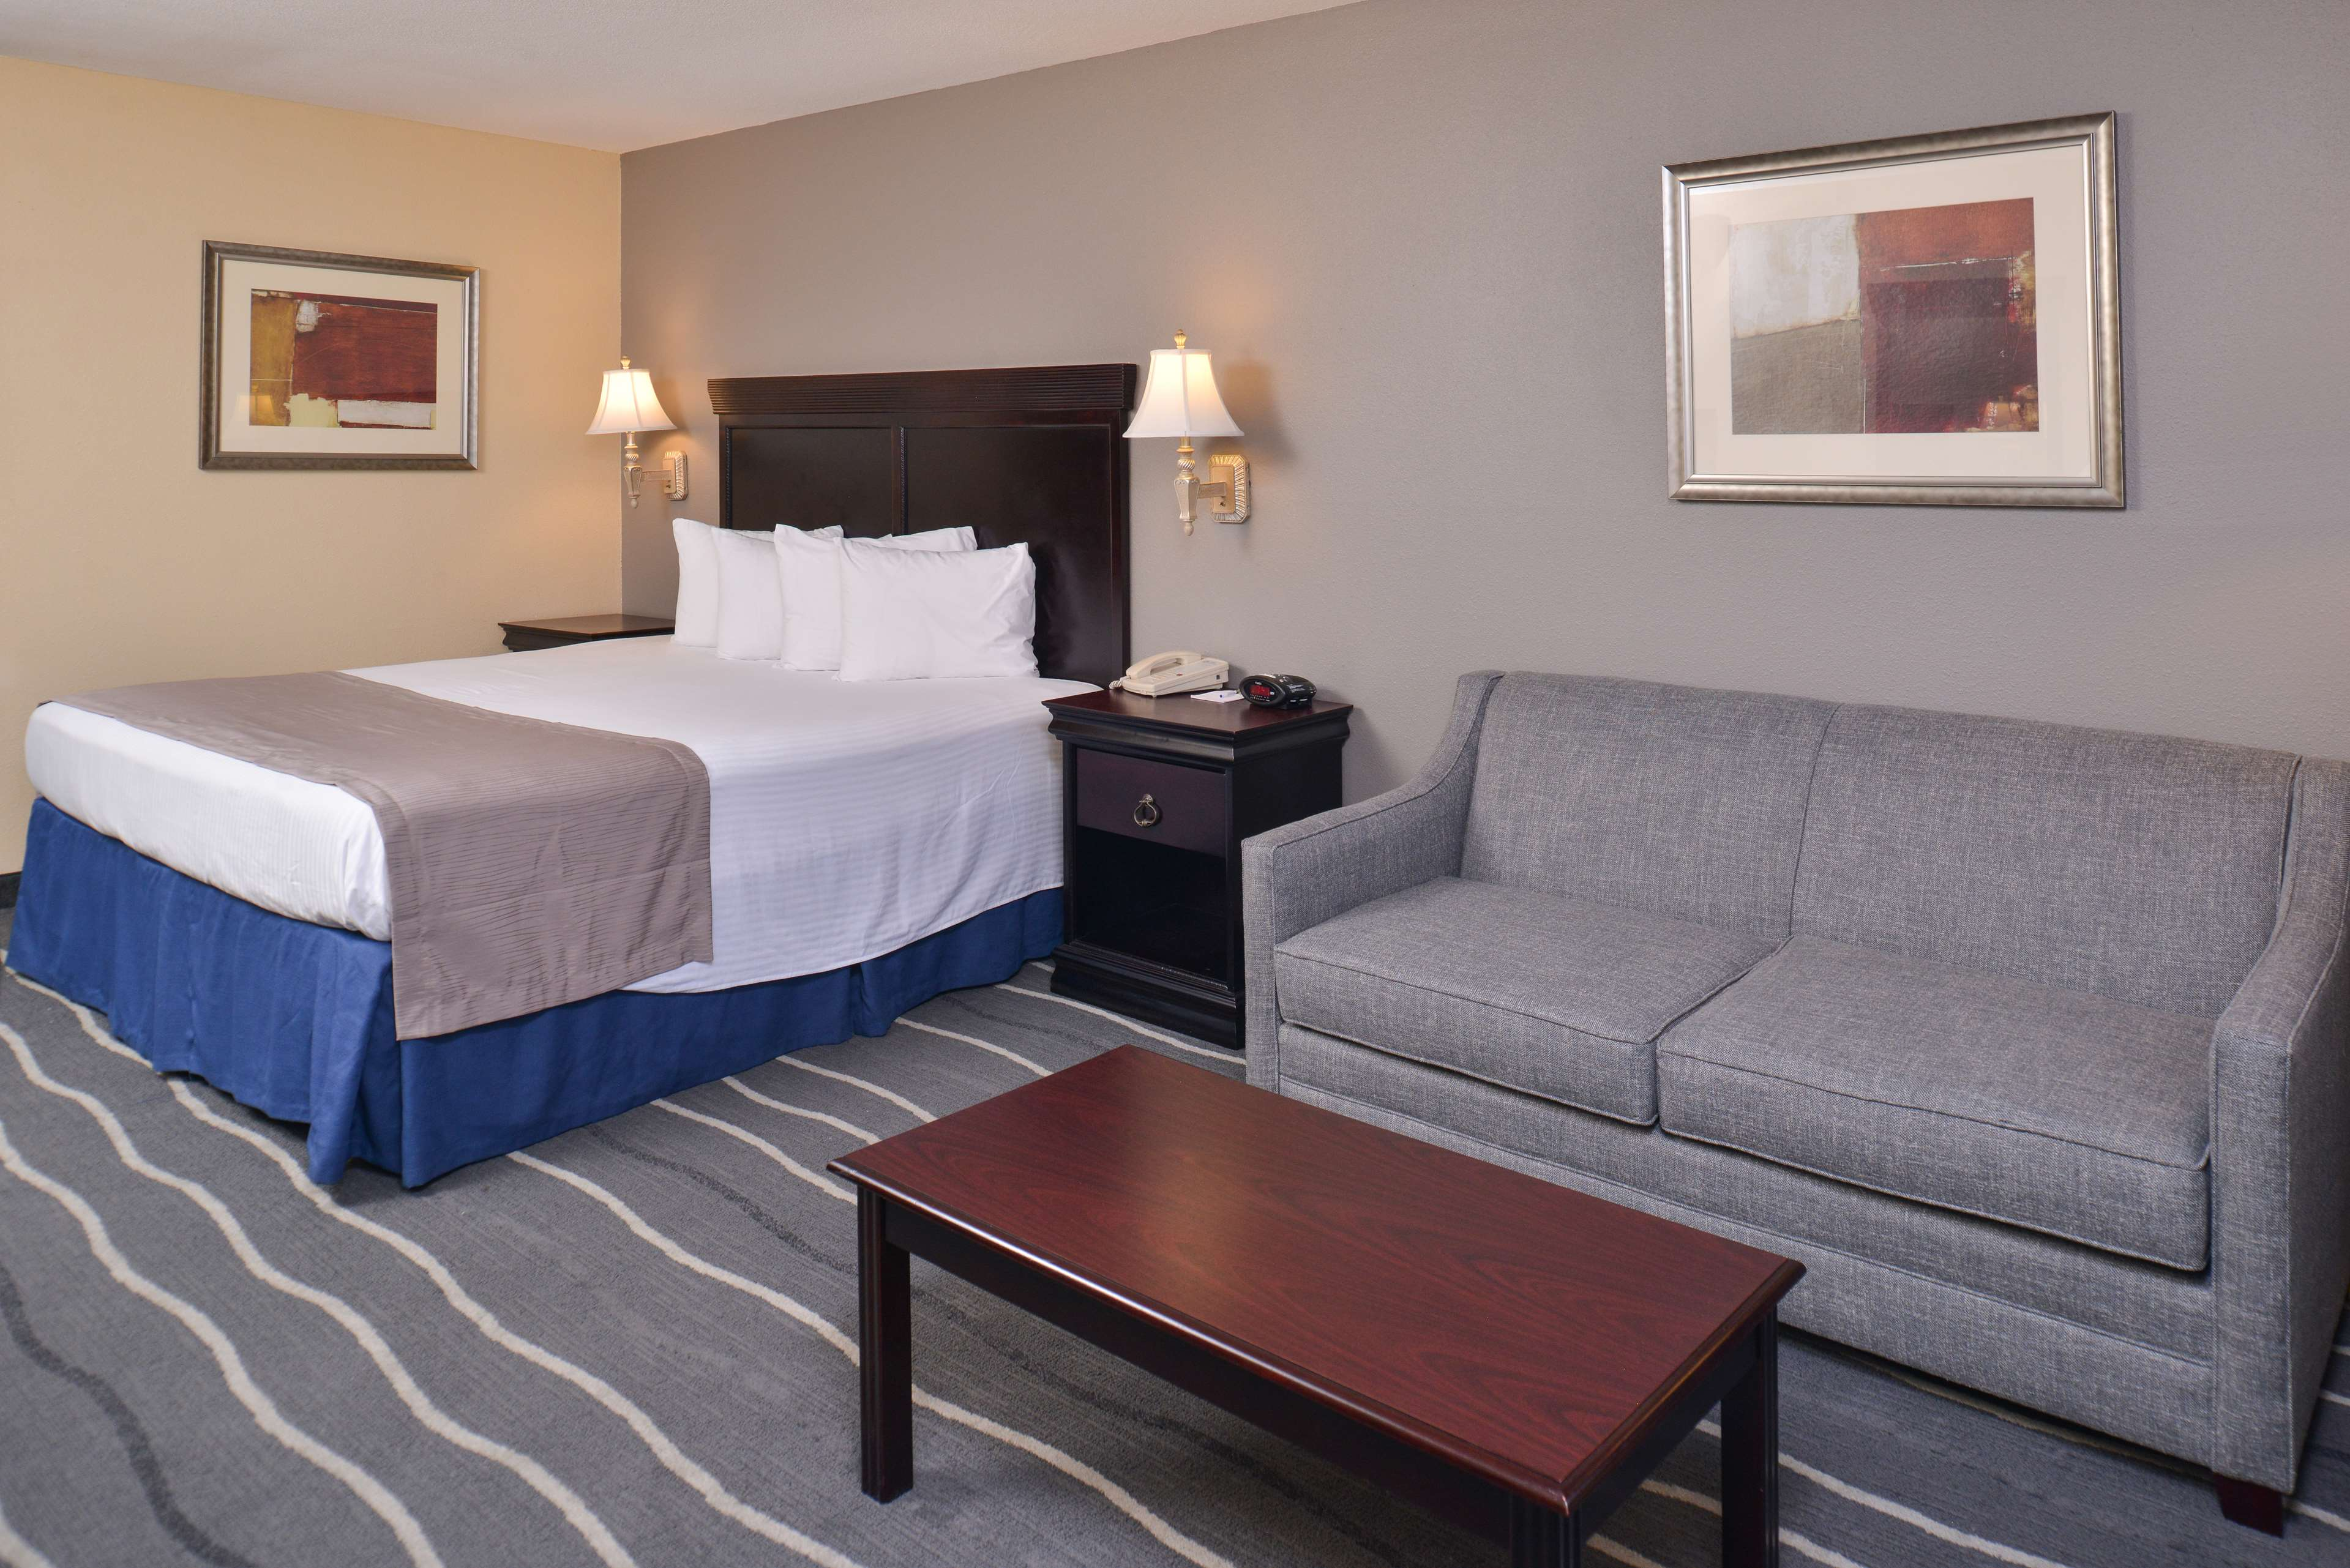 Best Western Irving Inn & Suites at DFW Airport image 17